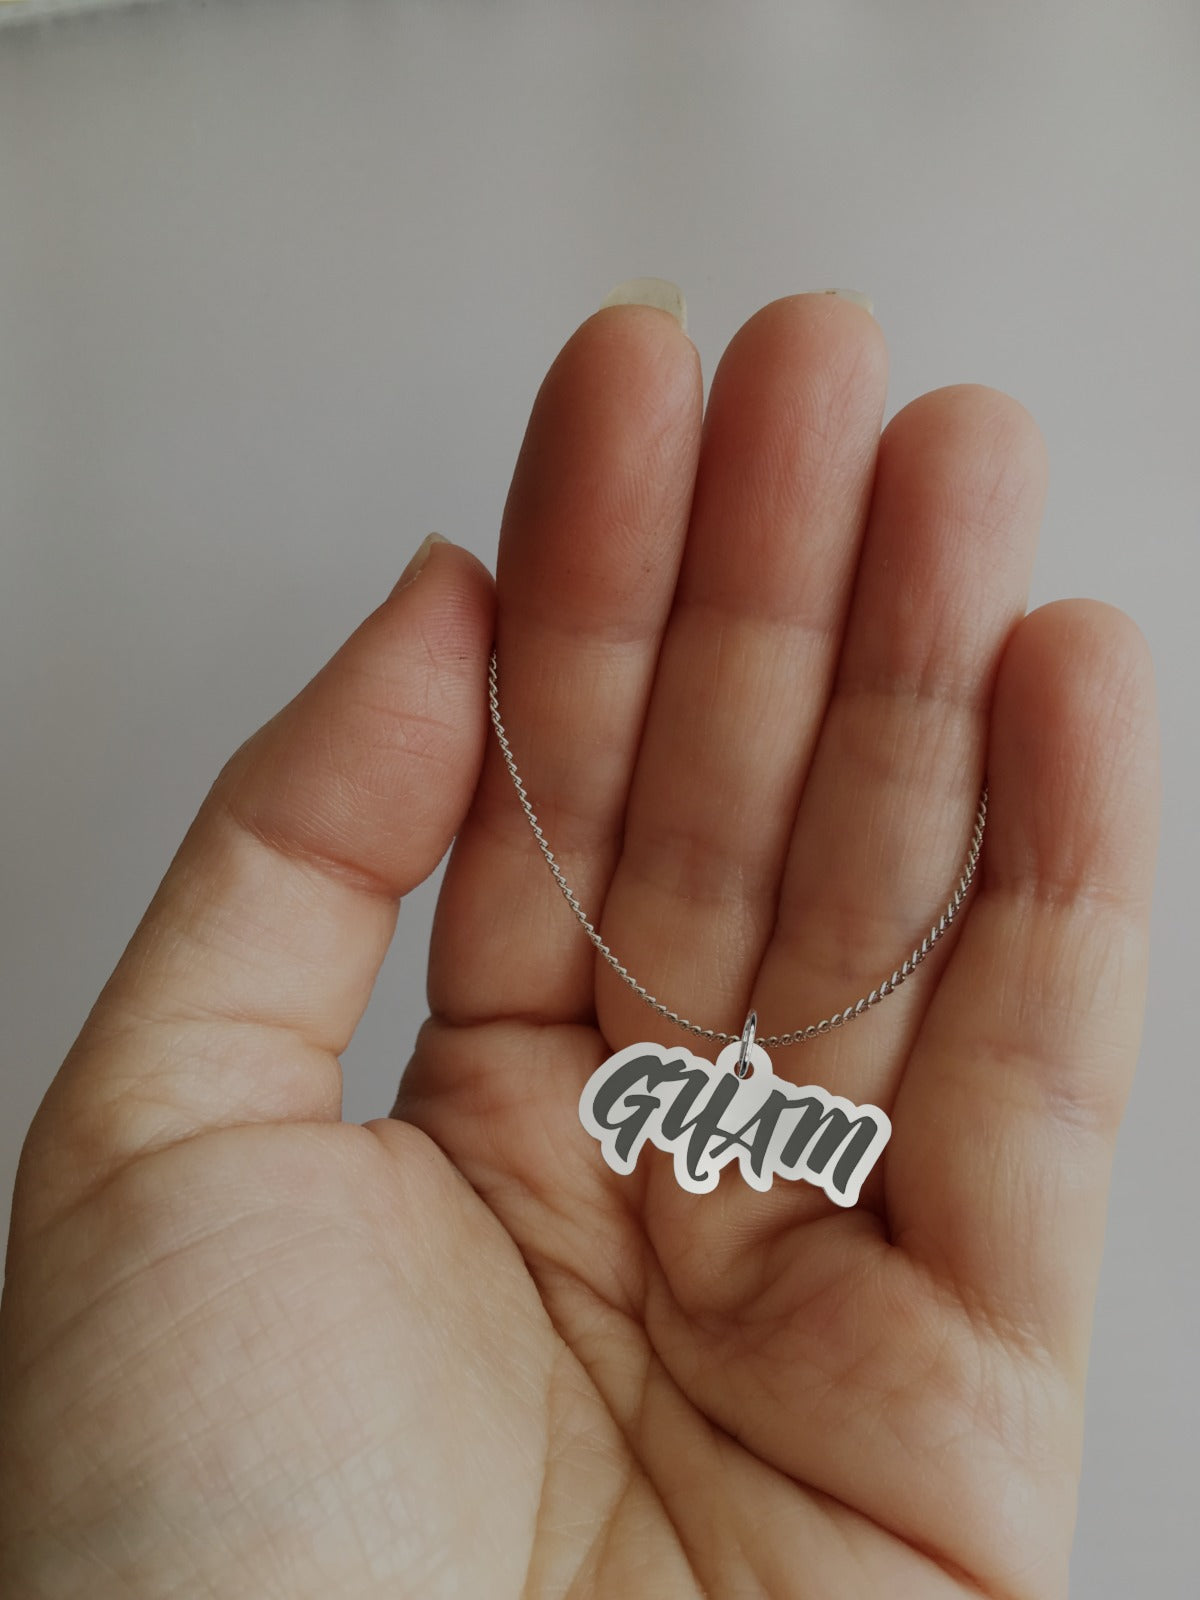 Guam Engraved Sterling Silver Necklace